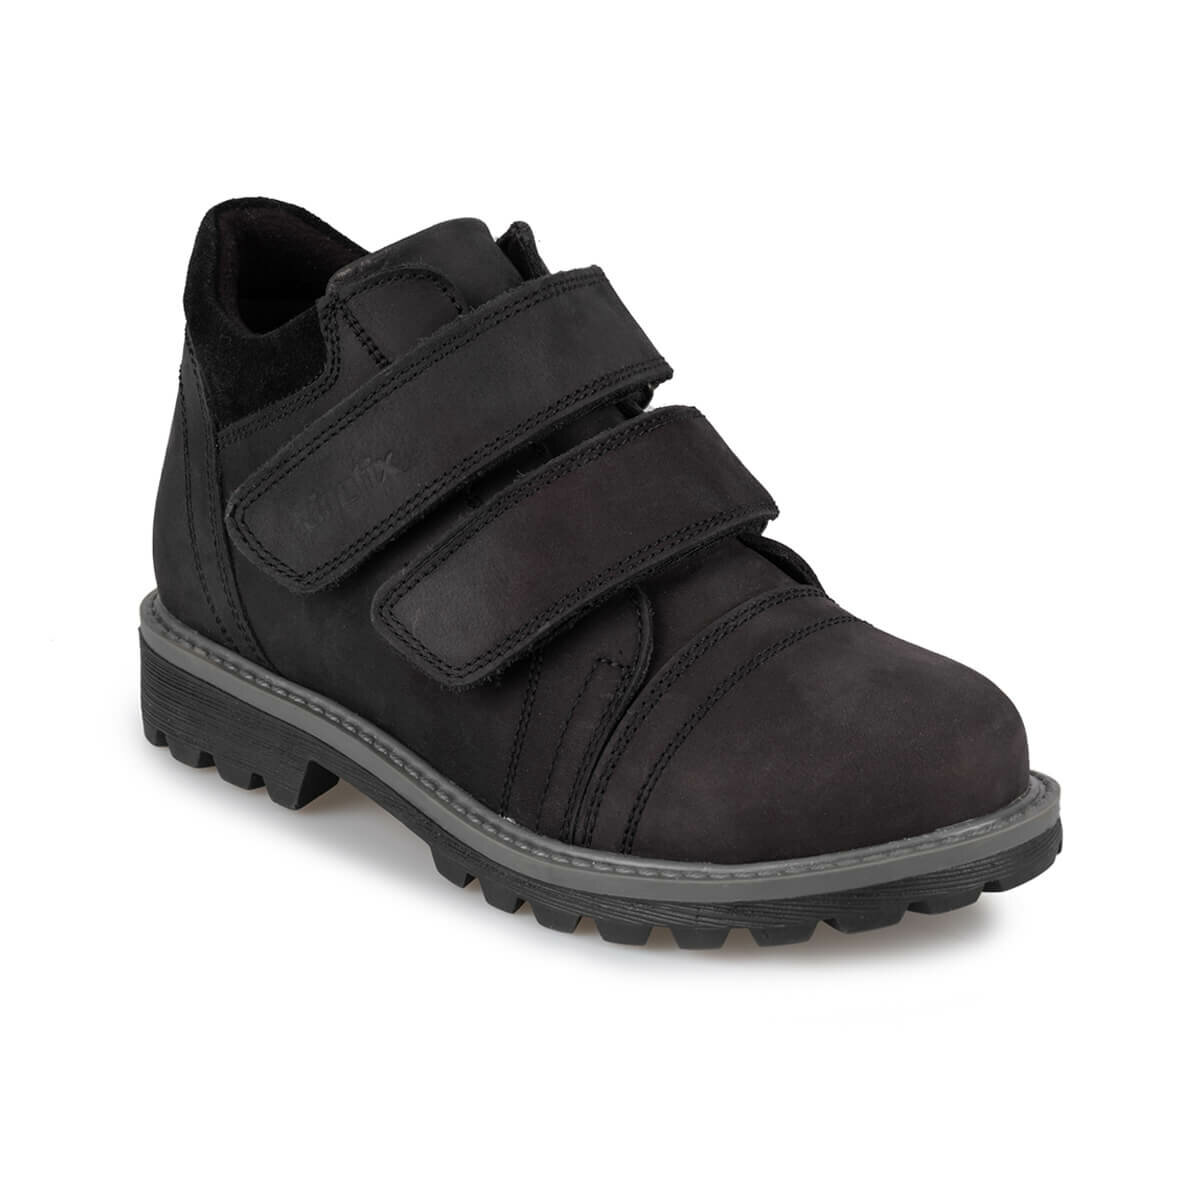 FLO RADELA 9PR Black Male Child Boots KINETIX